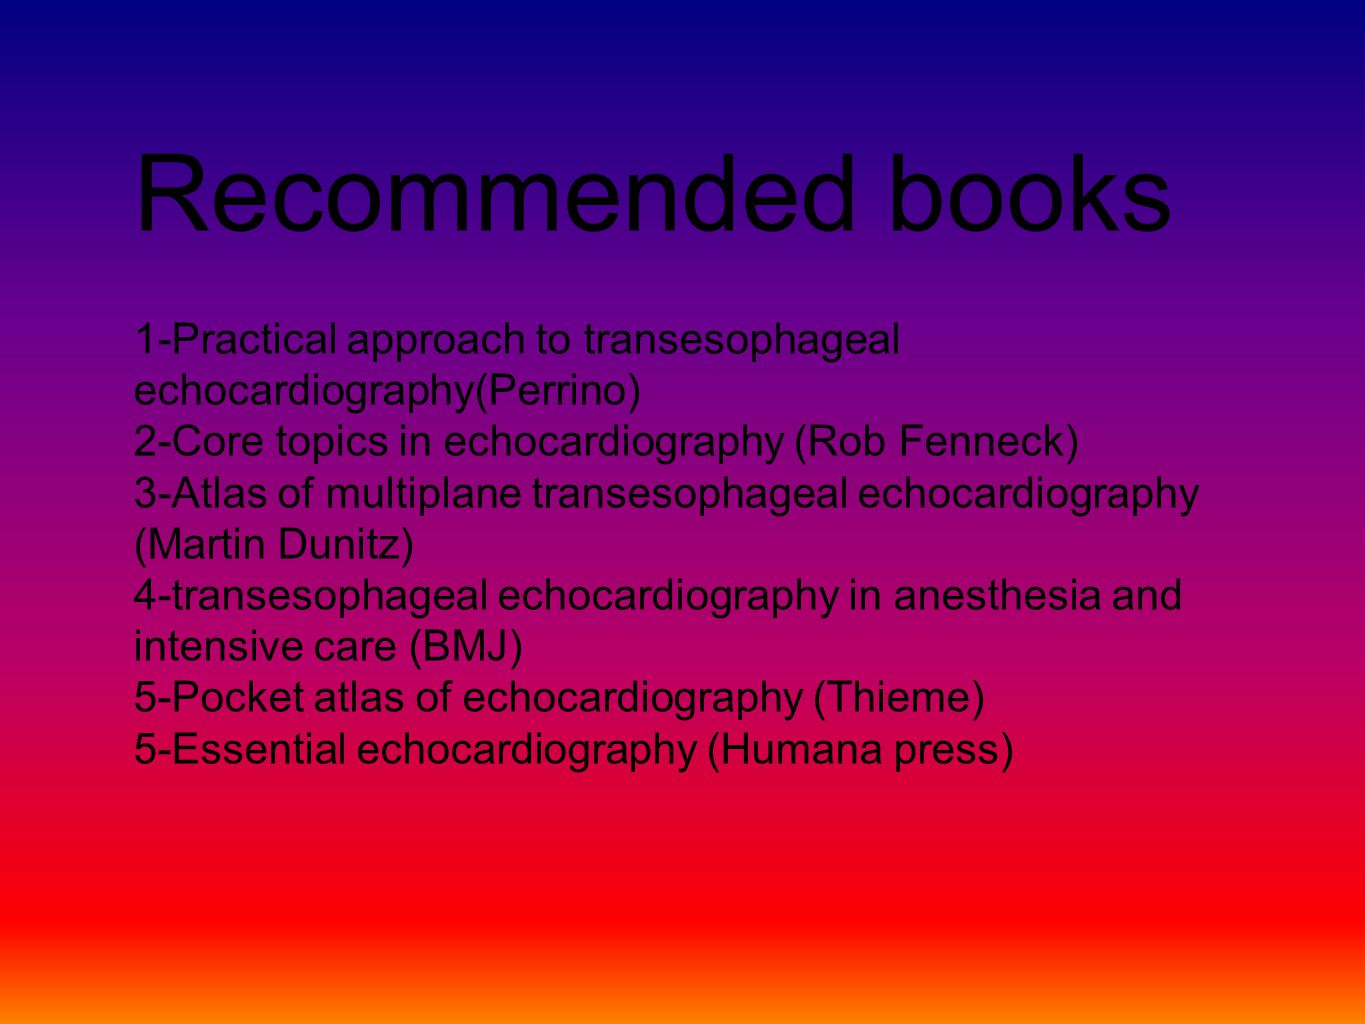 Recommended books 1-Practical approach to transesophageal echocardiography(Perrino) 2-Core topics in echocardiography (Rob Fenneck) 3-Atlas of multiplane transesophageal echocardiography (Martin Dunitz) 4-transesophageal echocardiography in anesthesia and intensive care (BMJ) 5-Pocket atlas of echocardiography (Thieme) 5-Essential echocardiography (Humana press)